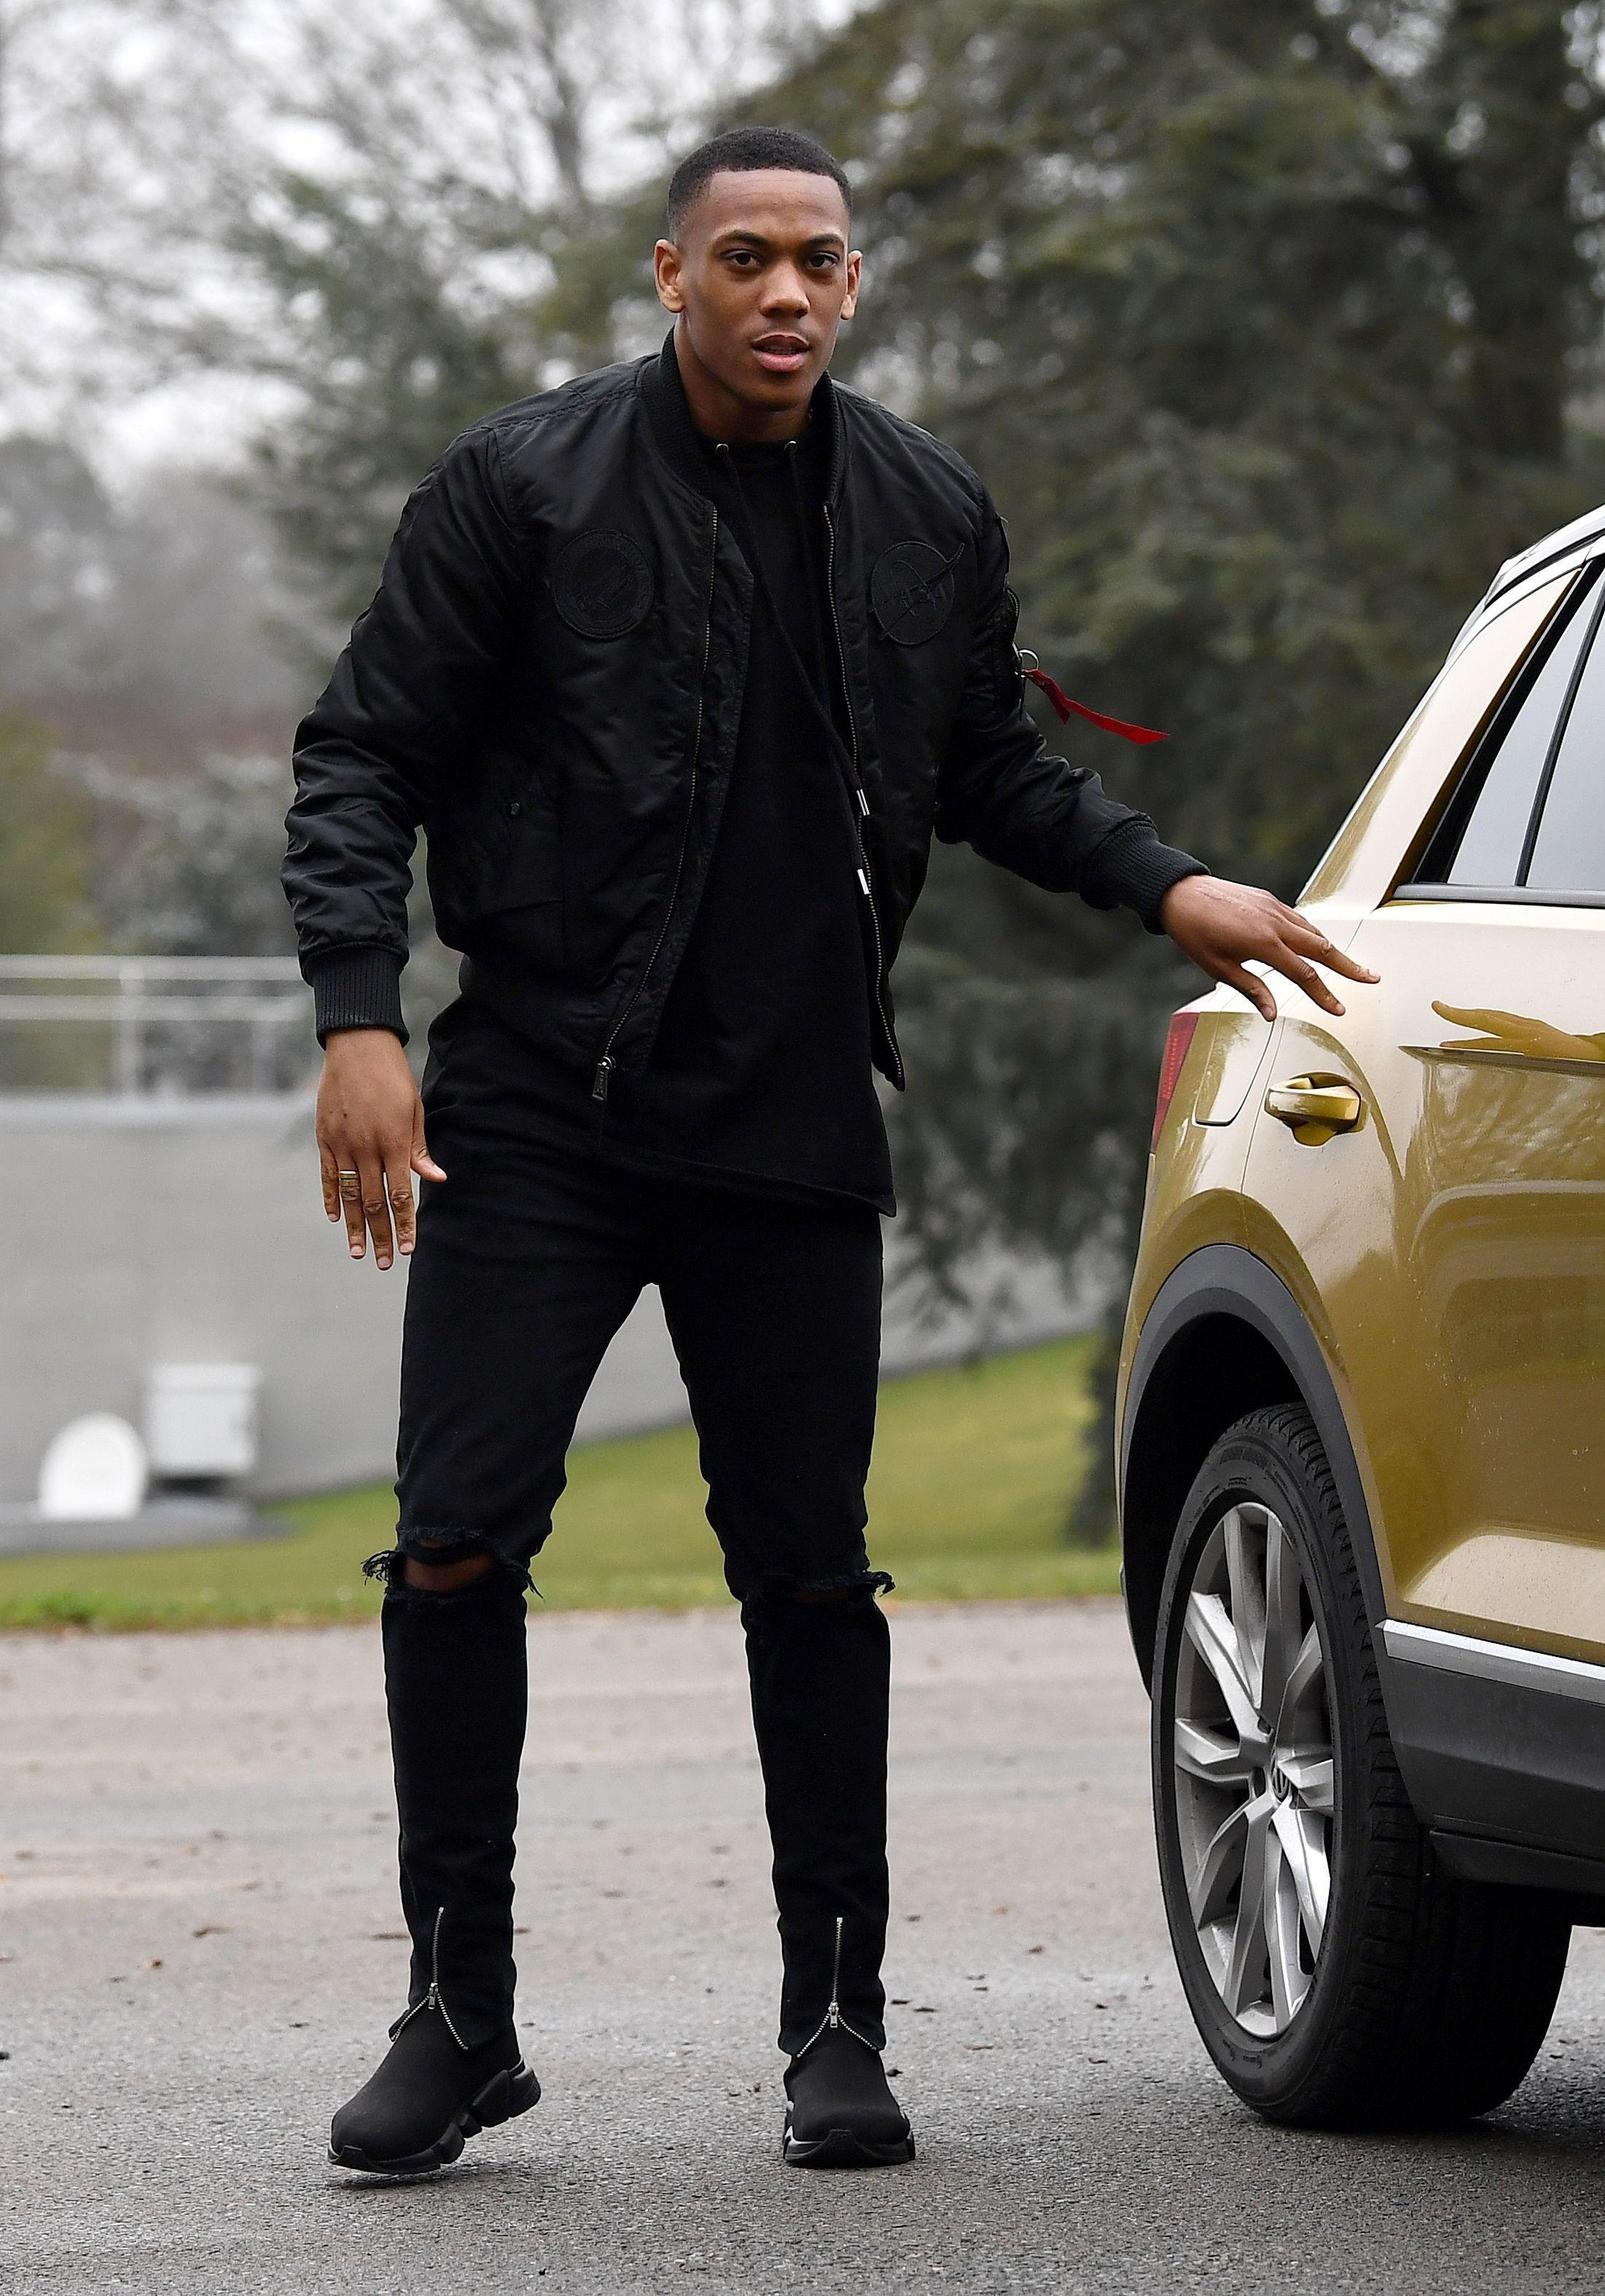 Manchester United star Anthony Martial's agent refuses to commit player's future to club amid Arsenal interest